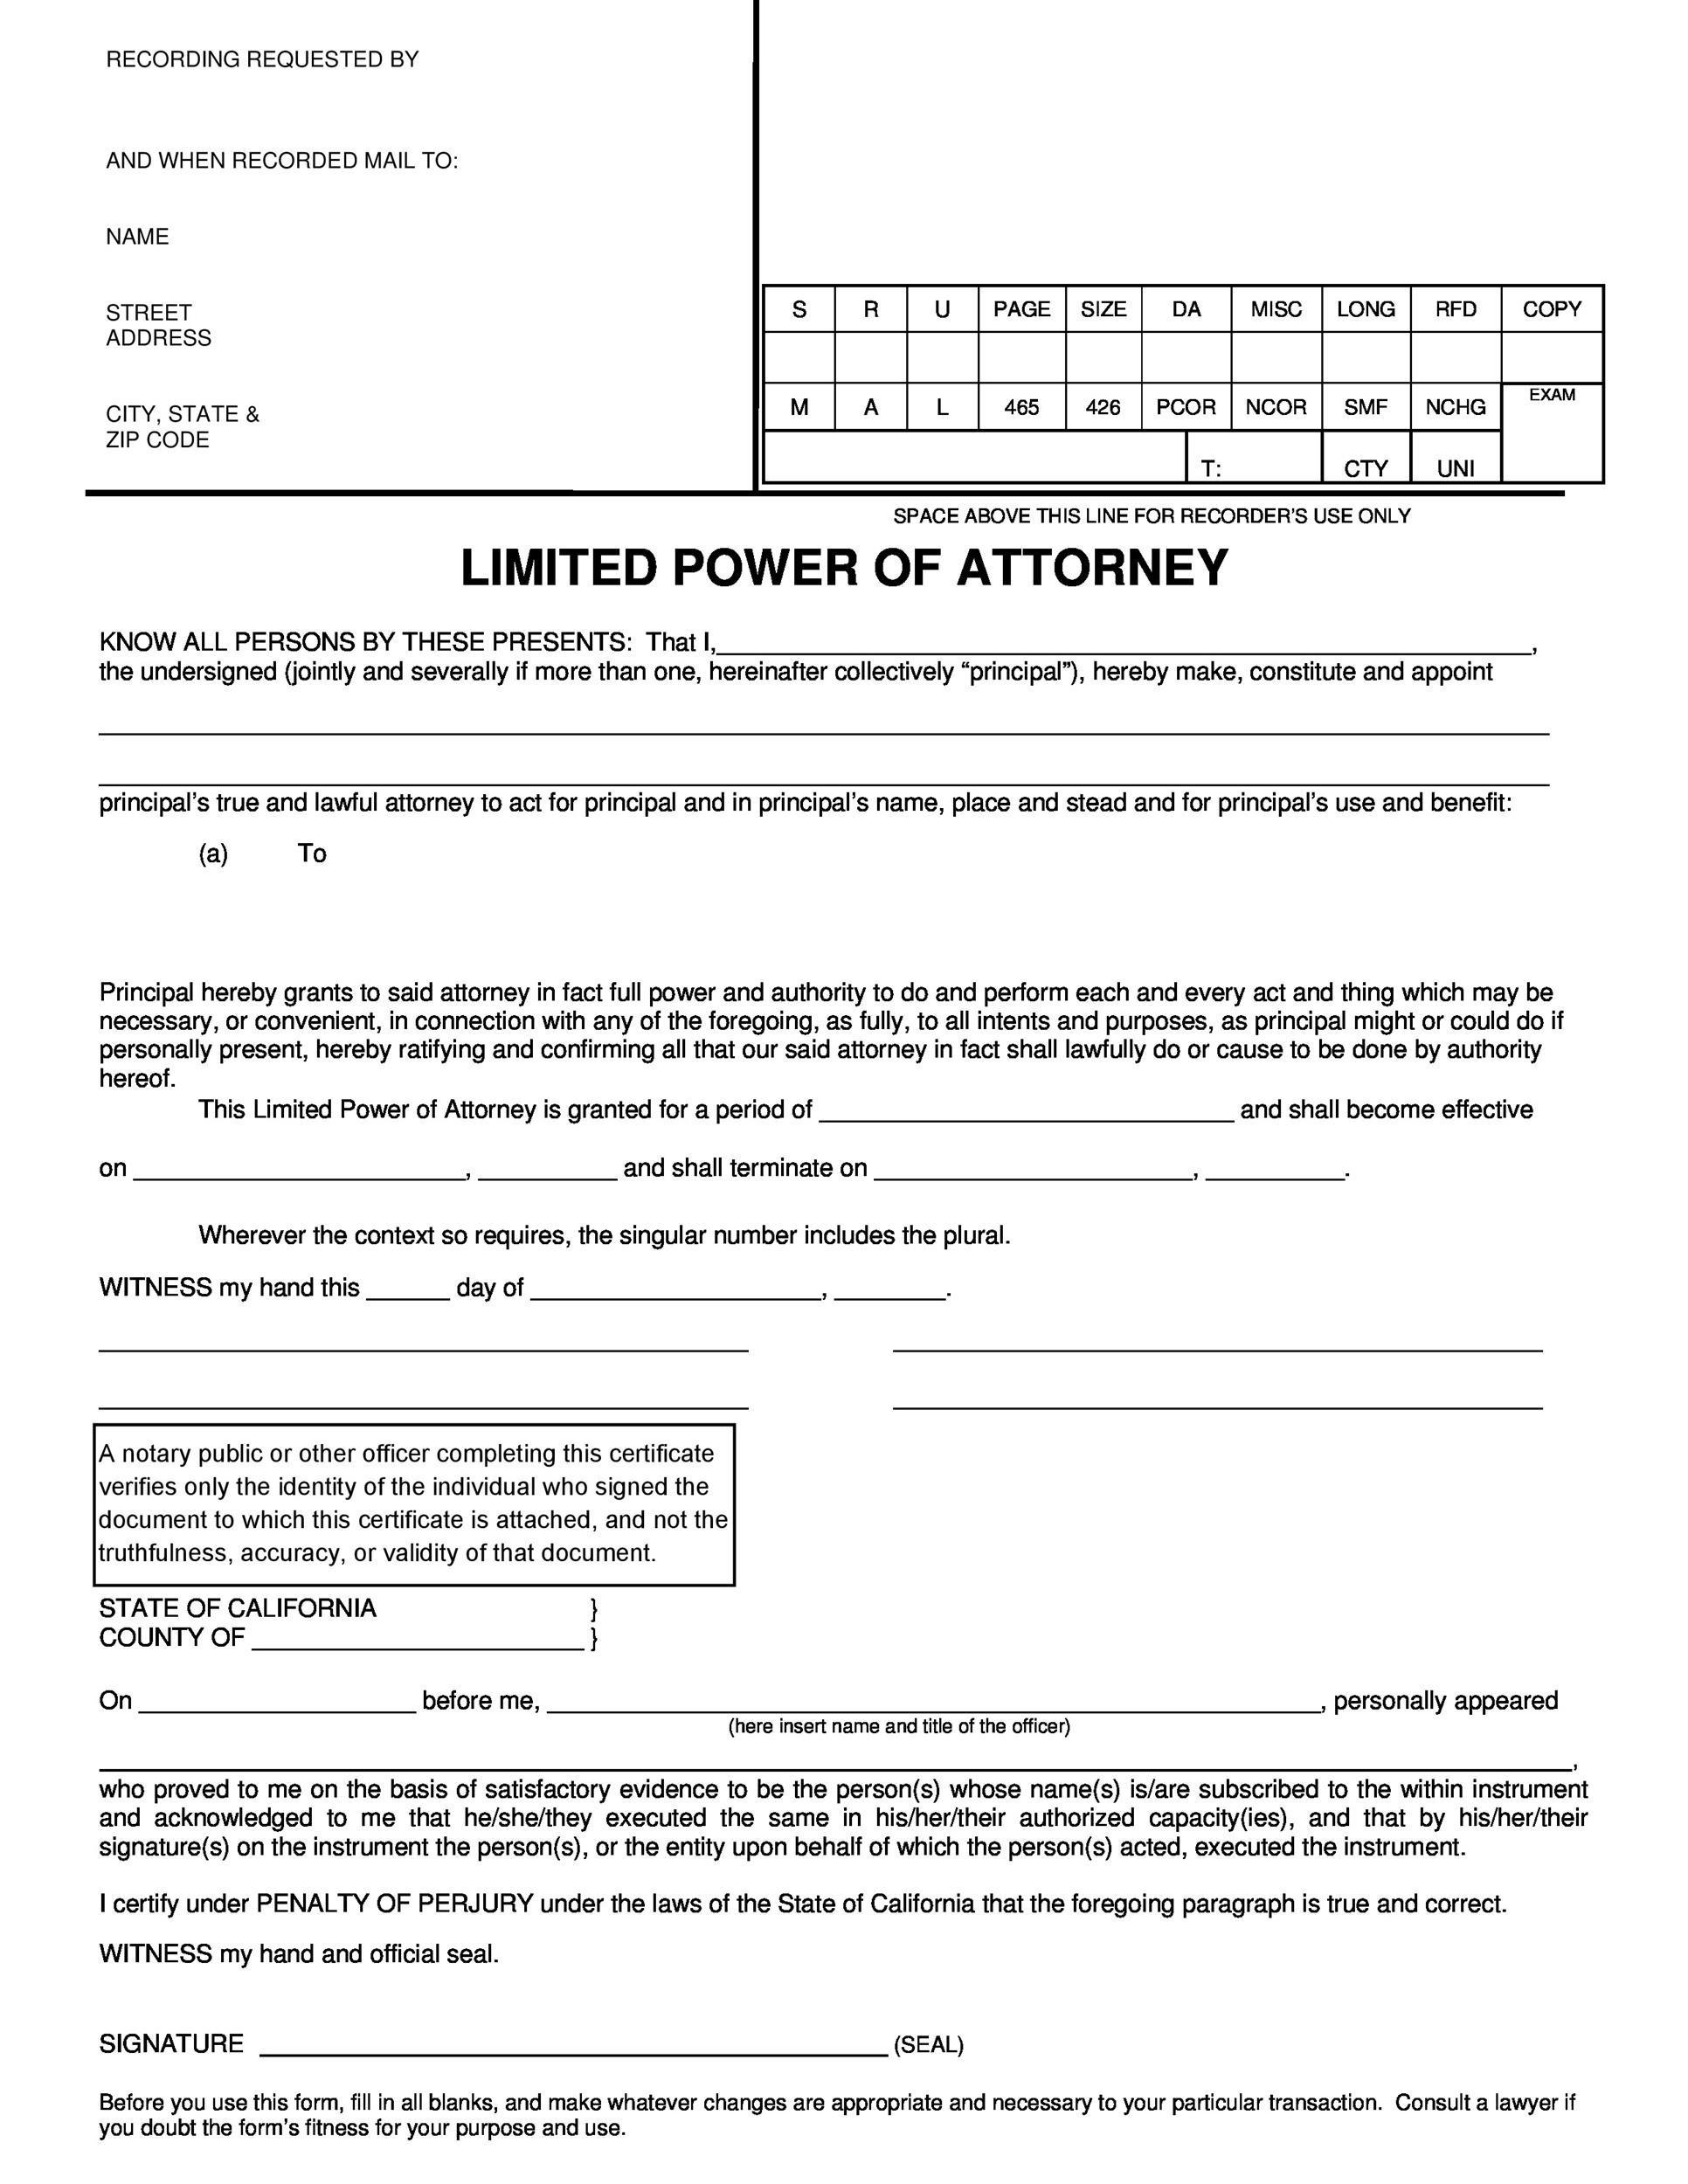 power of attorney 26